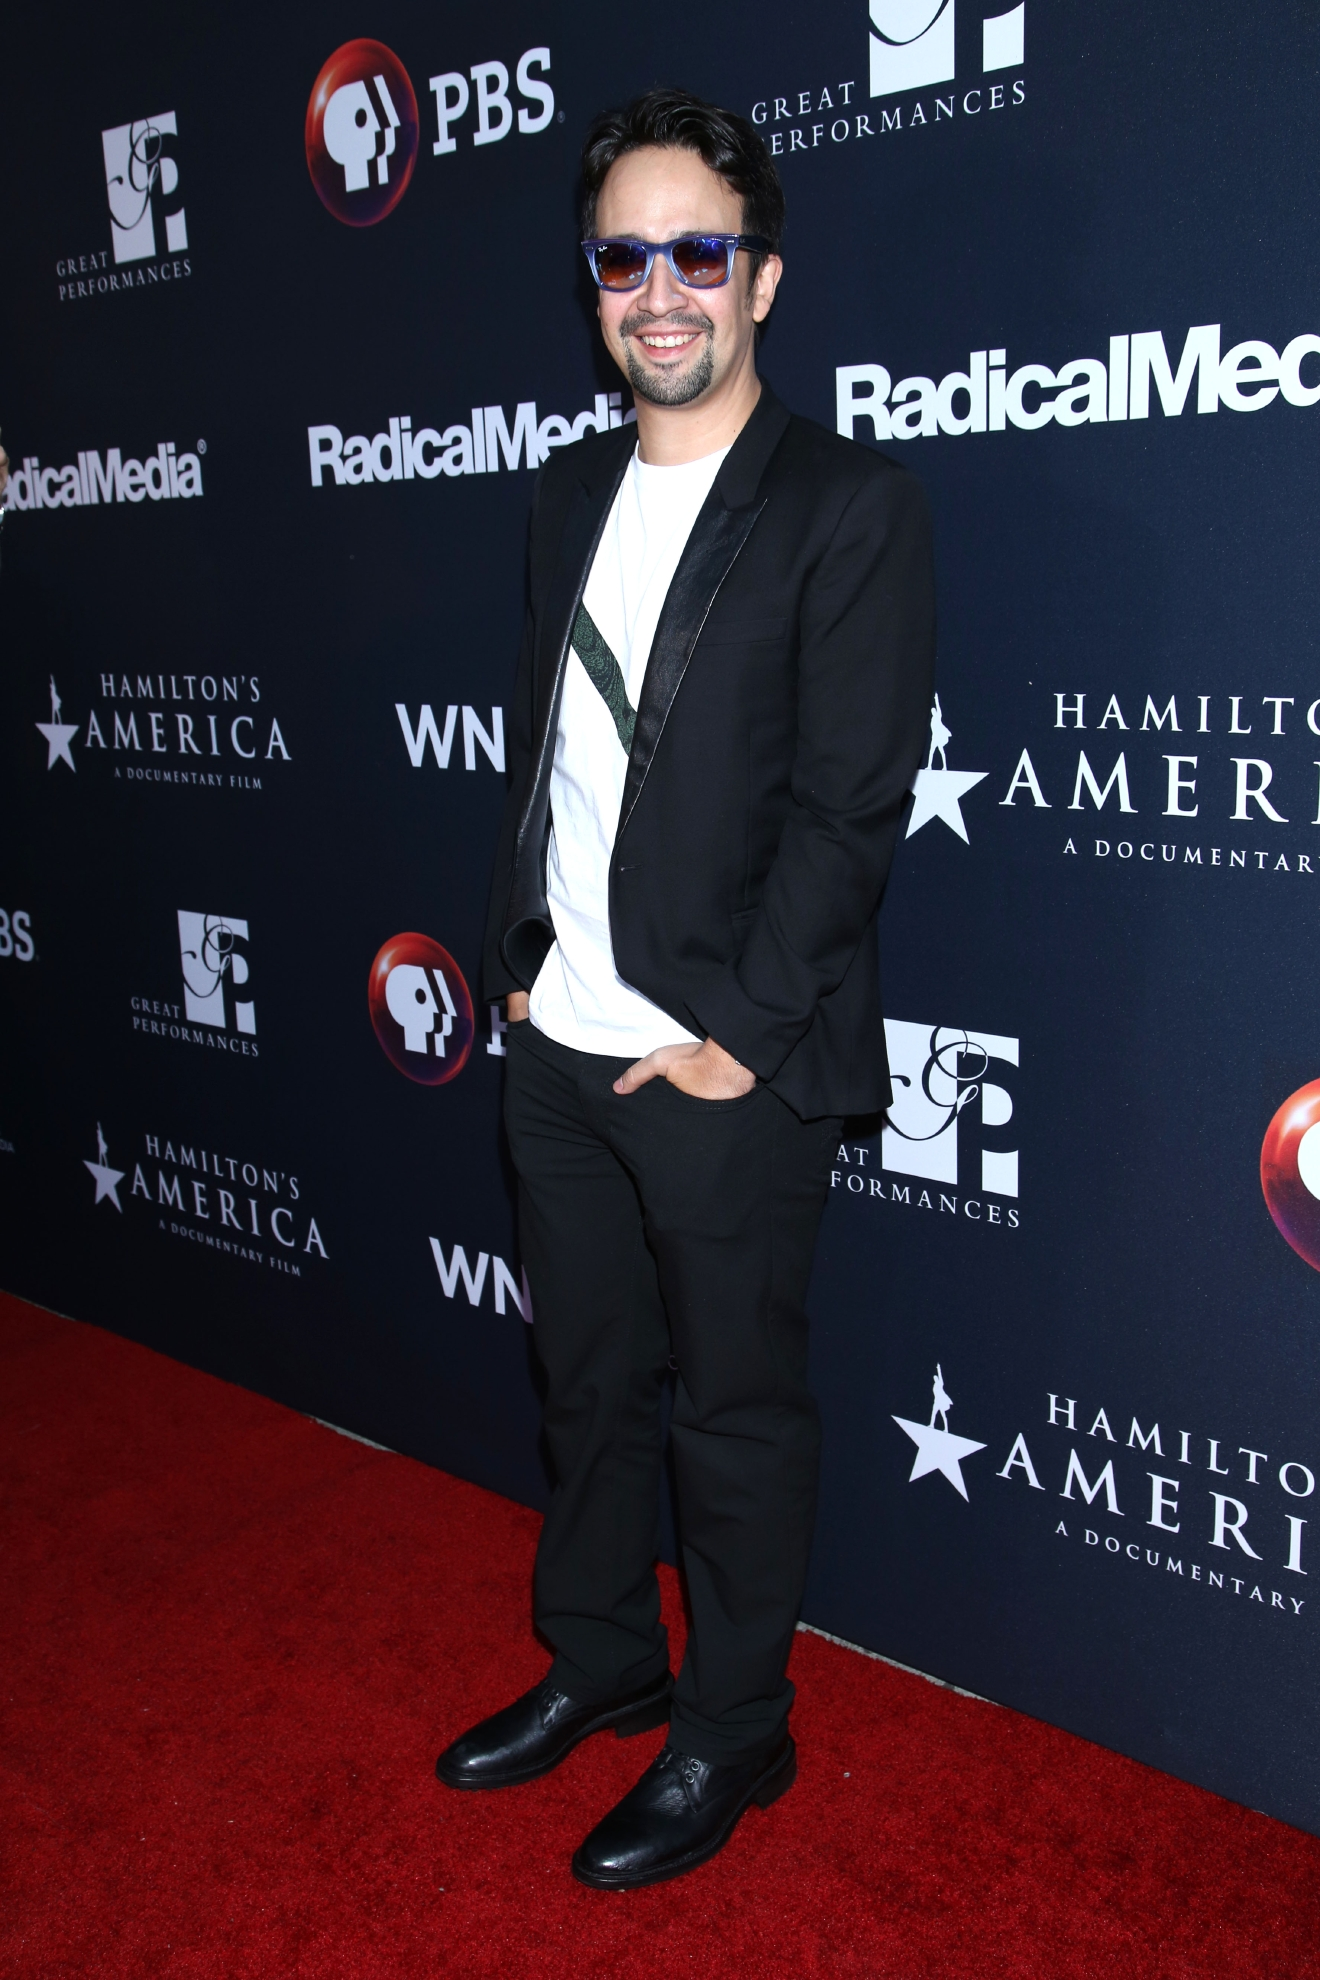 Lin-Manuel Miranda attends the premiere for PBS' Great Performances: Hamilton's America held at the United Palace Theatre. (Joseph Marzullo/WENN.com)